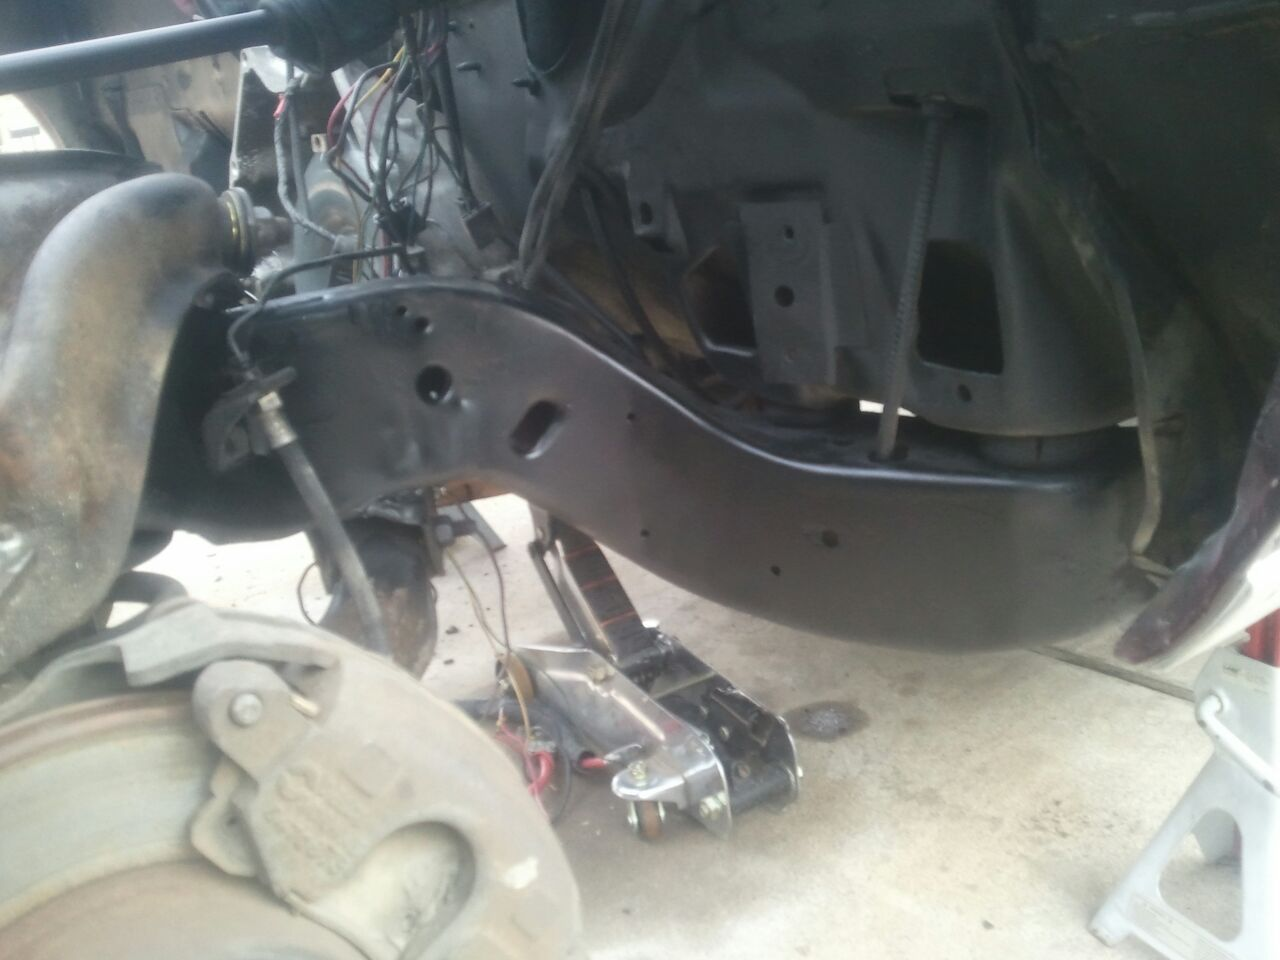 A/c delete questions / car build update-2012-11-12_16.03.12.jpg